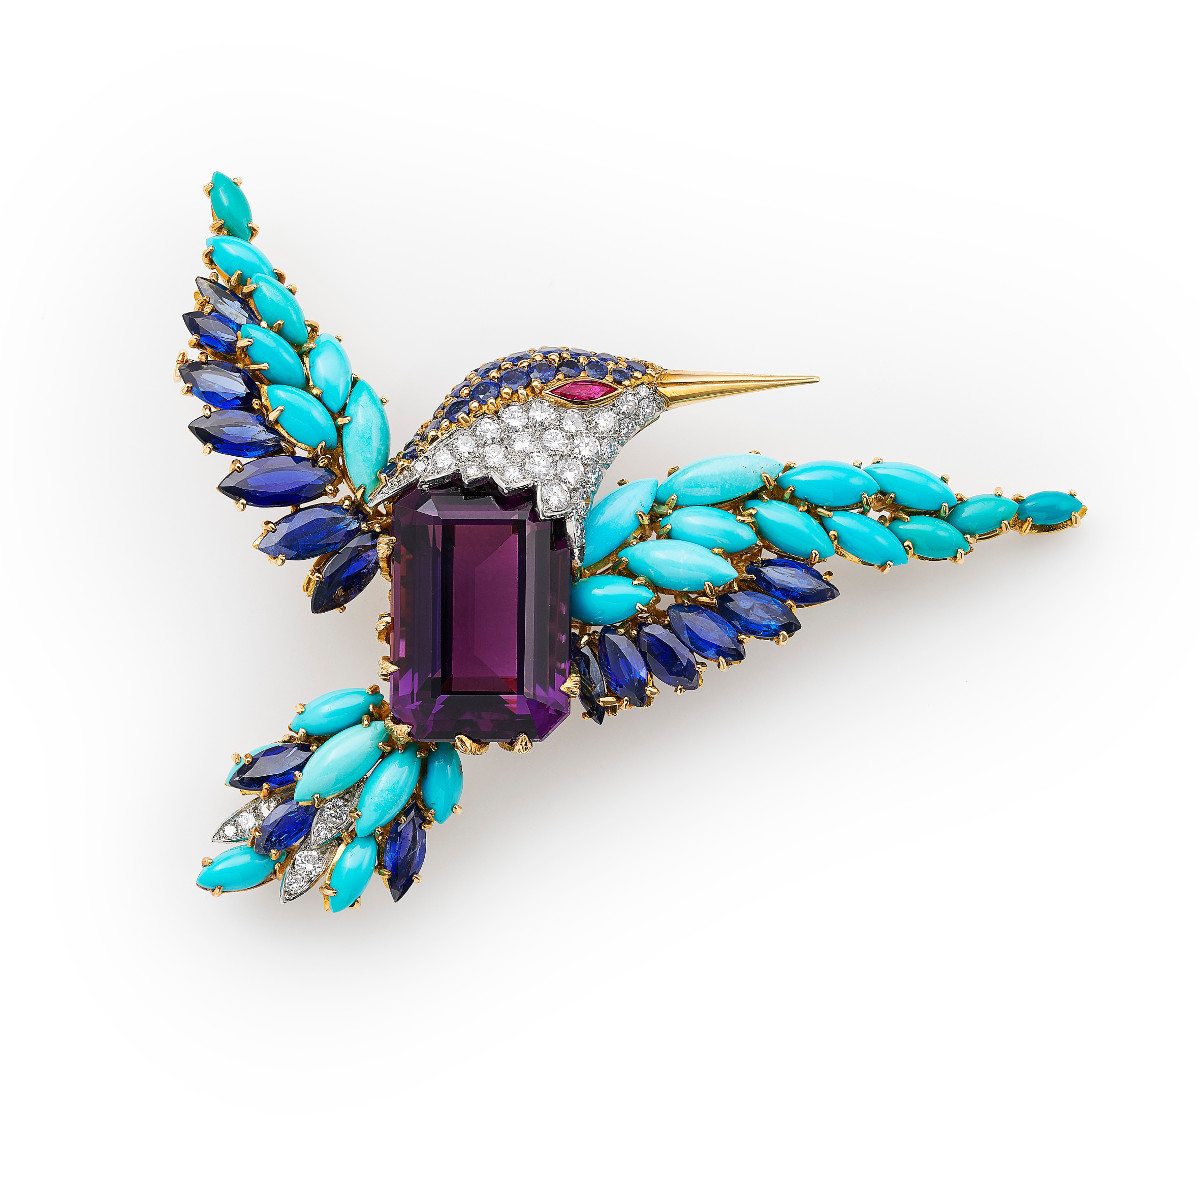 Amethyst and Turquoise Bird Brooch